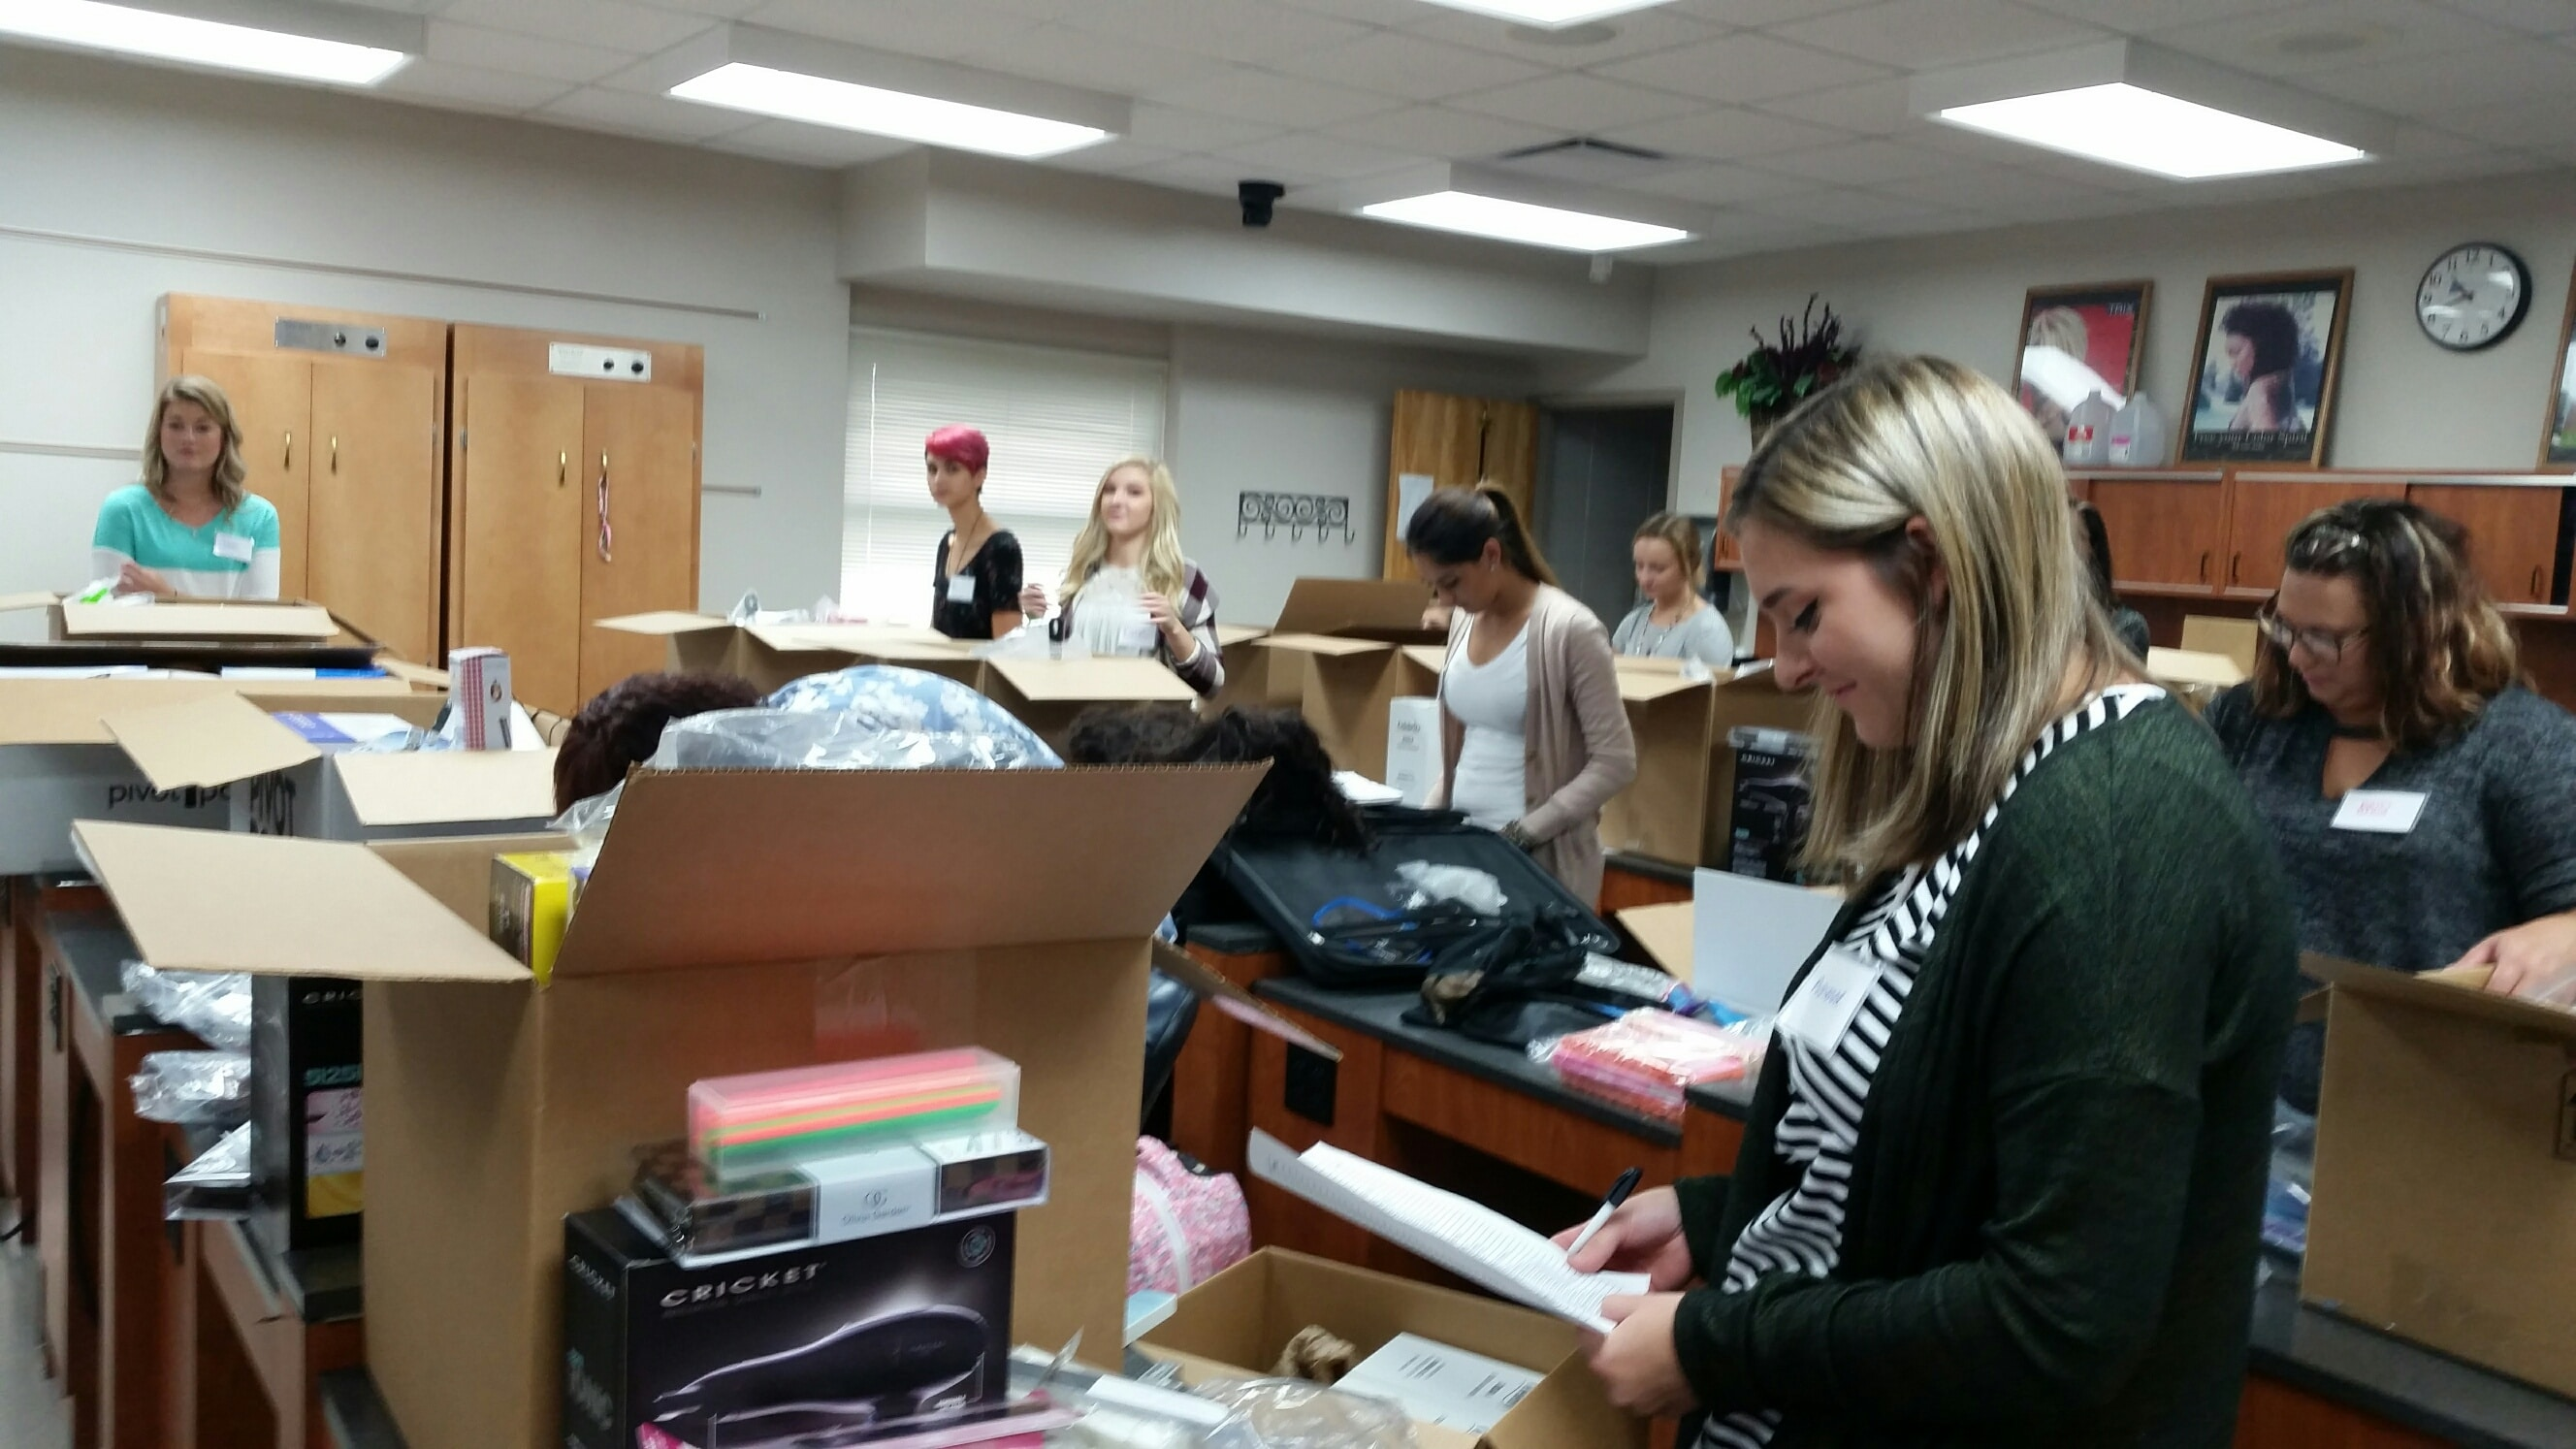 Moraine Park Cosmetology students opening cosmetology kits containing shears, razors, curling irons, combs, brushes, capes, makeup brushes, nails supplies, perm rods, color accessories and mannequin heads.